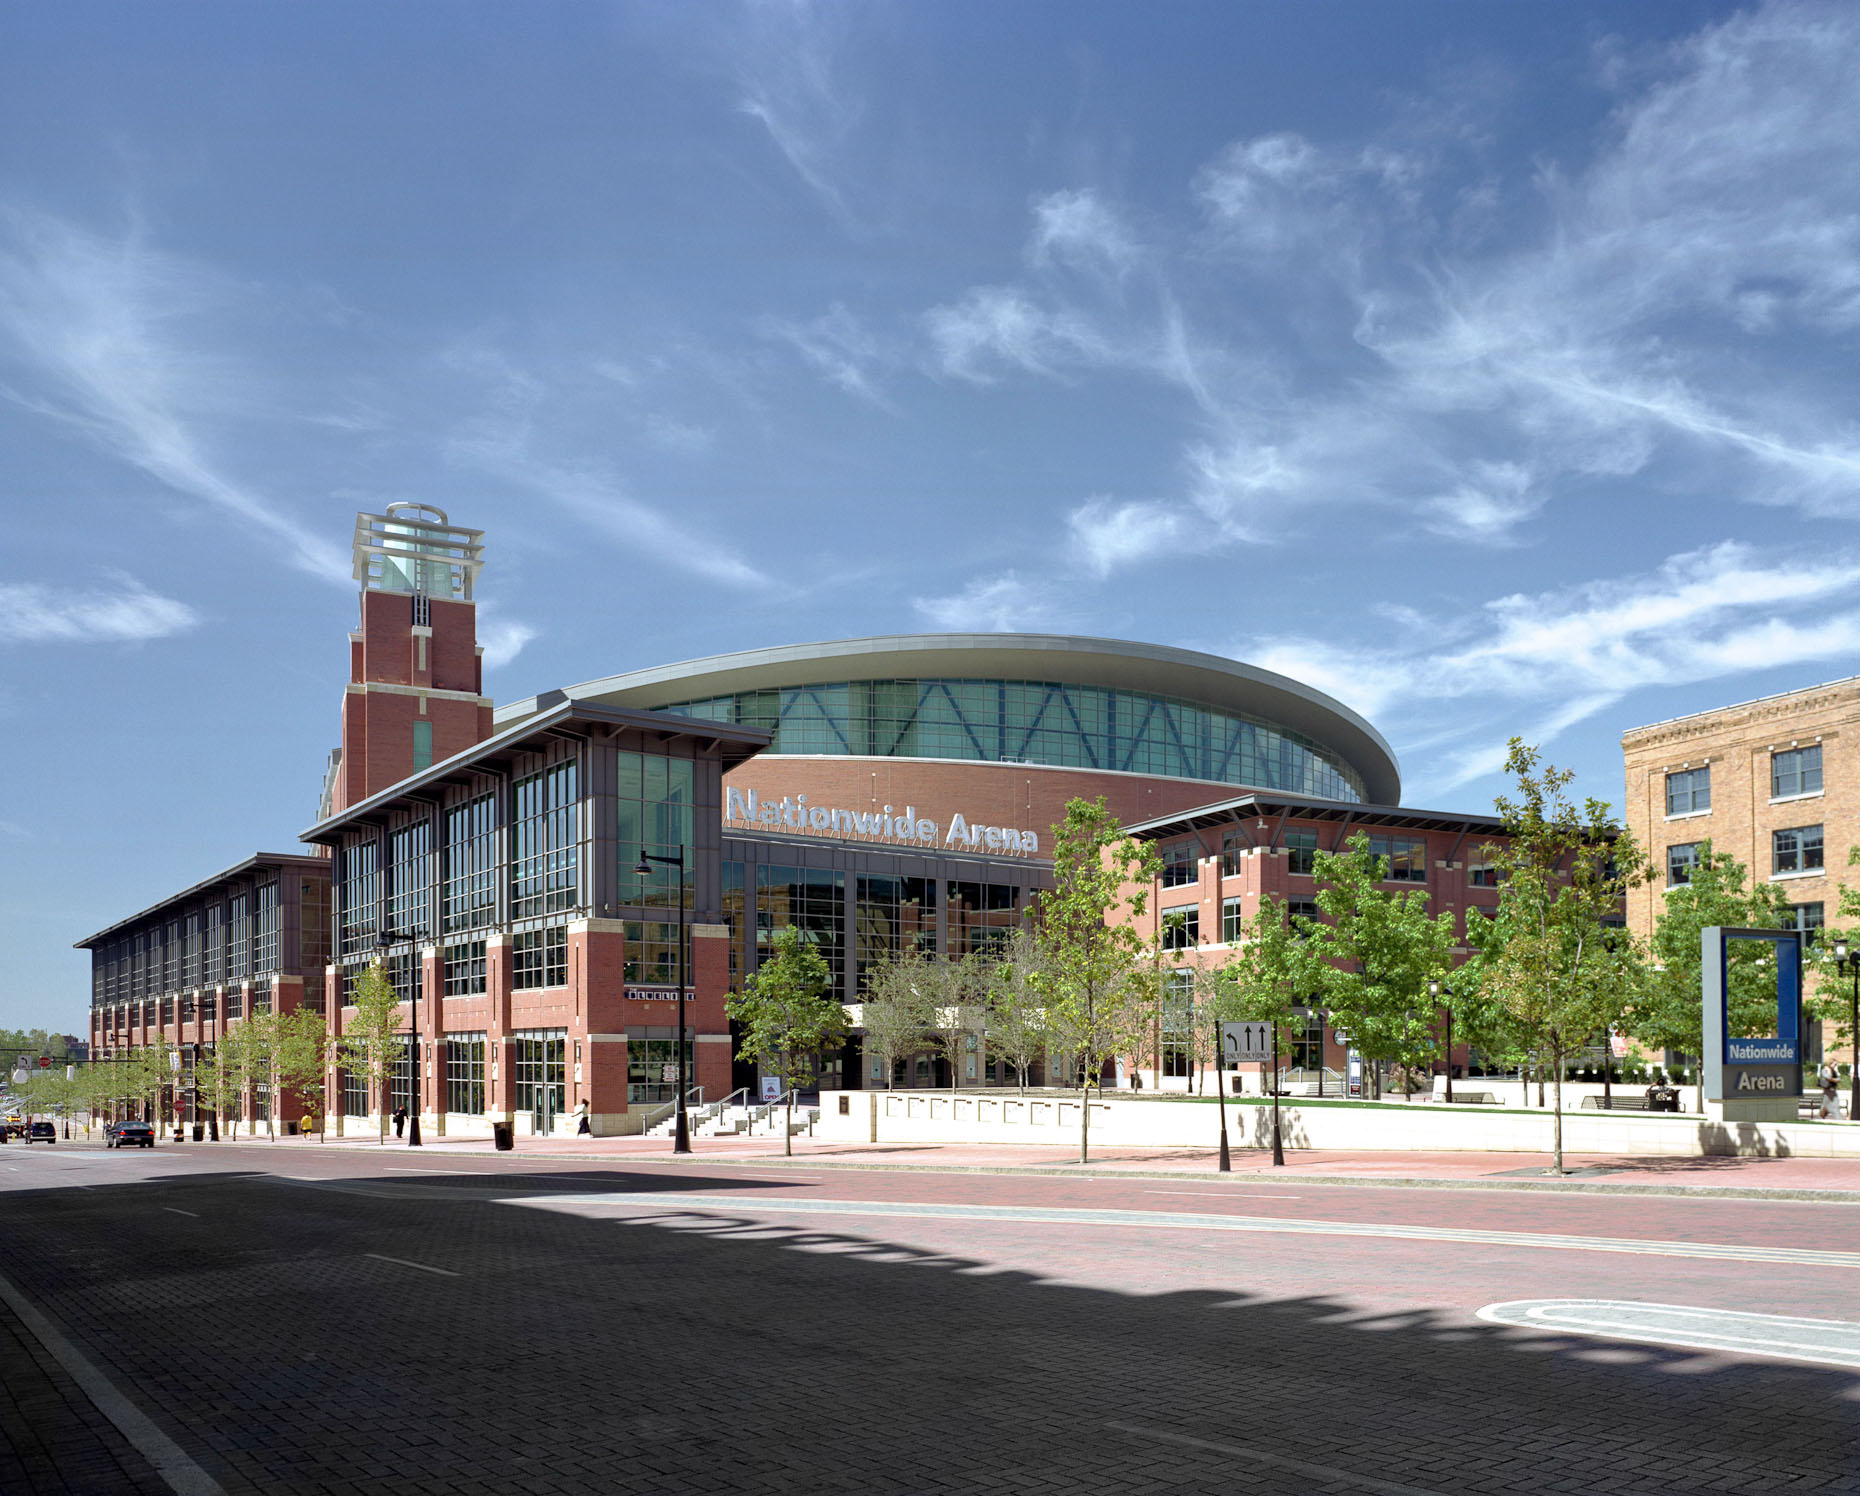 Nationwide Arena | 360 Architecture